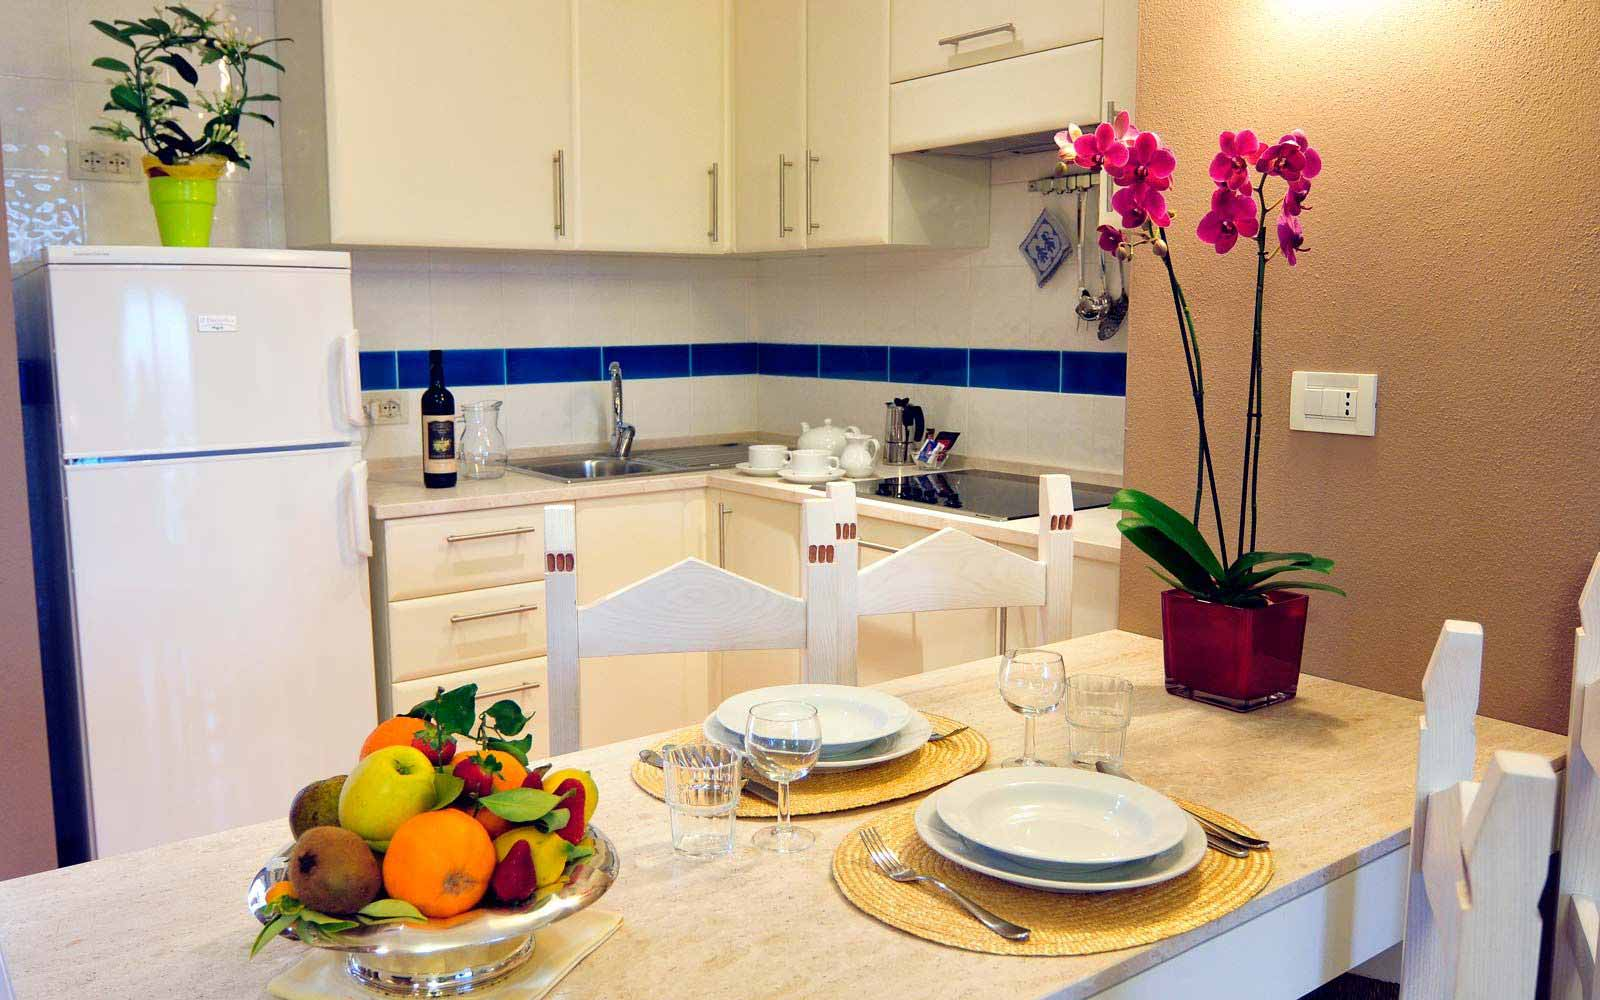 Kitchen at Lantana Resort Apartments